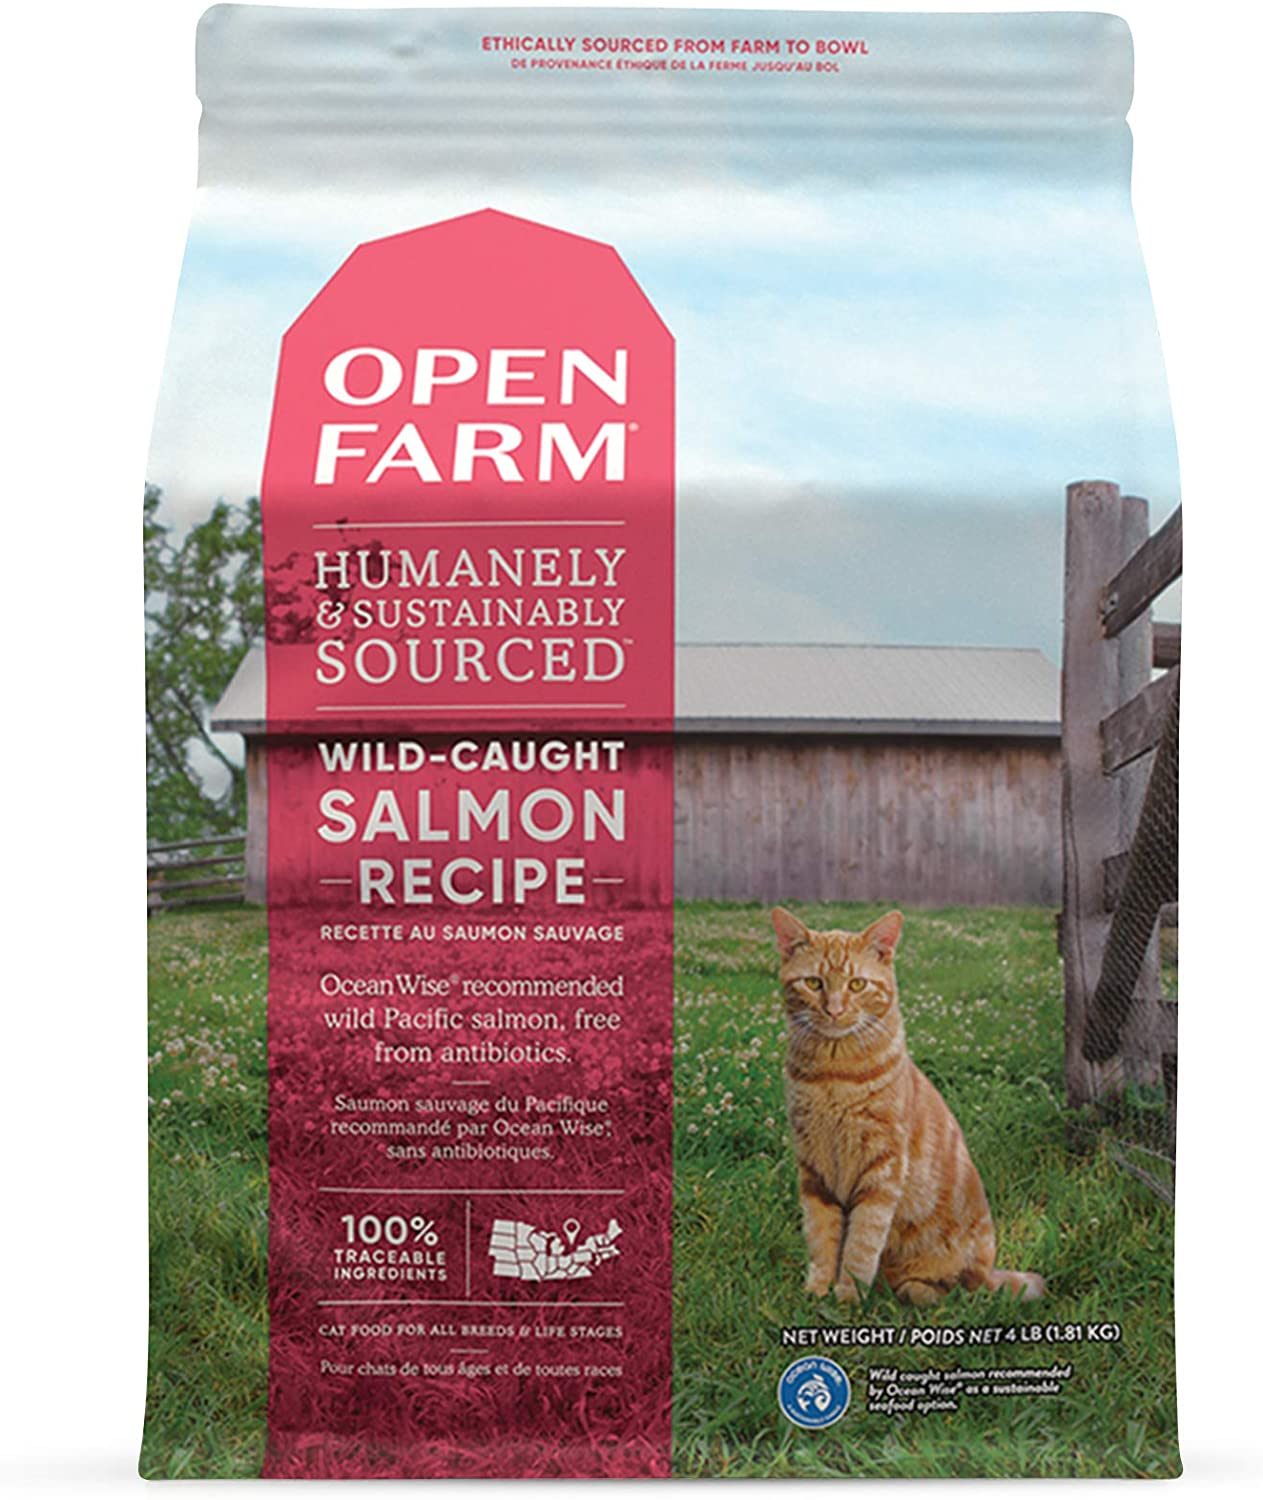 Open Farm Wild-Caught Salmon Grain-Free Dry Cat Food, Responsibly Sourced Pacific Salmon Recipe with Non-GMO Superfoods and No Artificial Flavors or Preservatives, 4 lbs